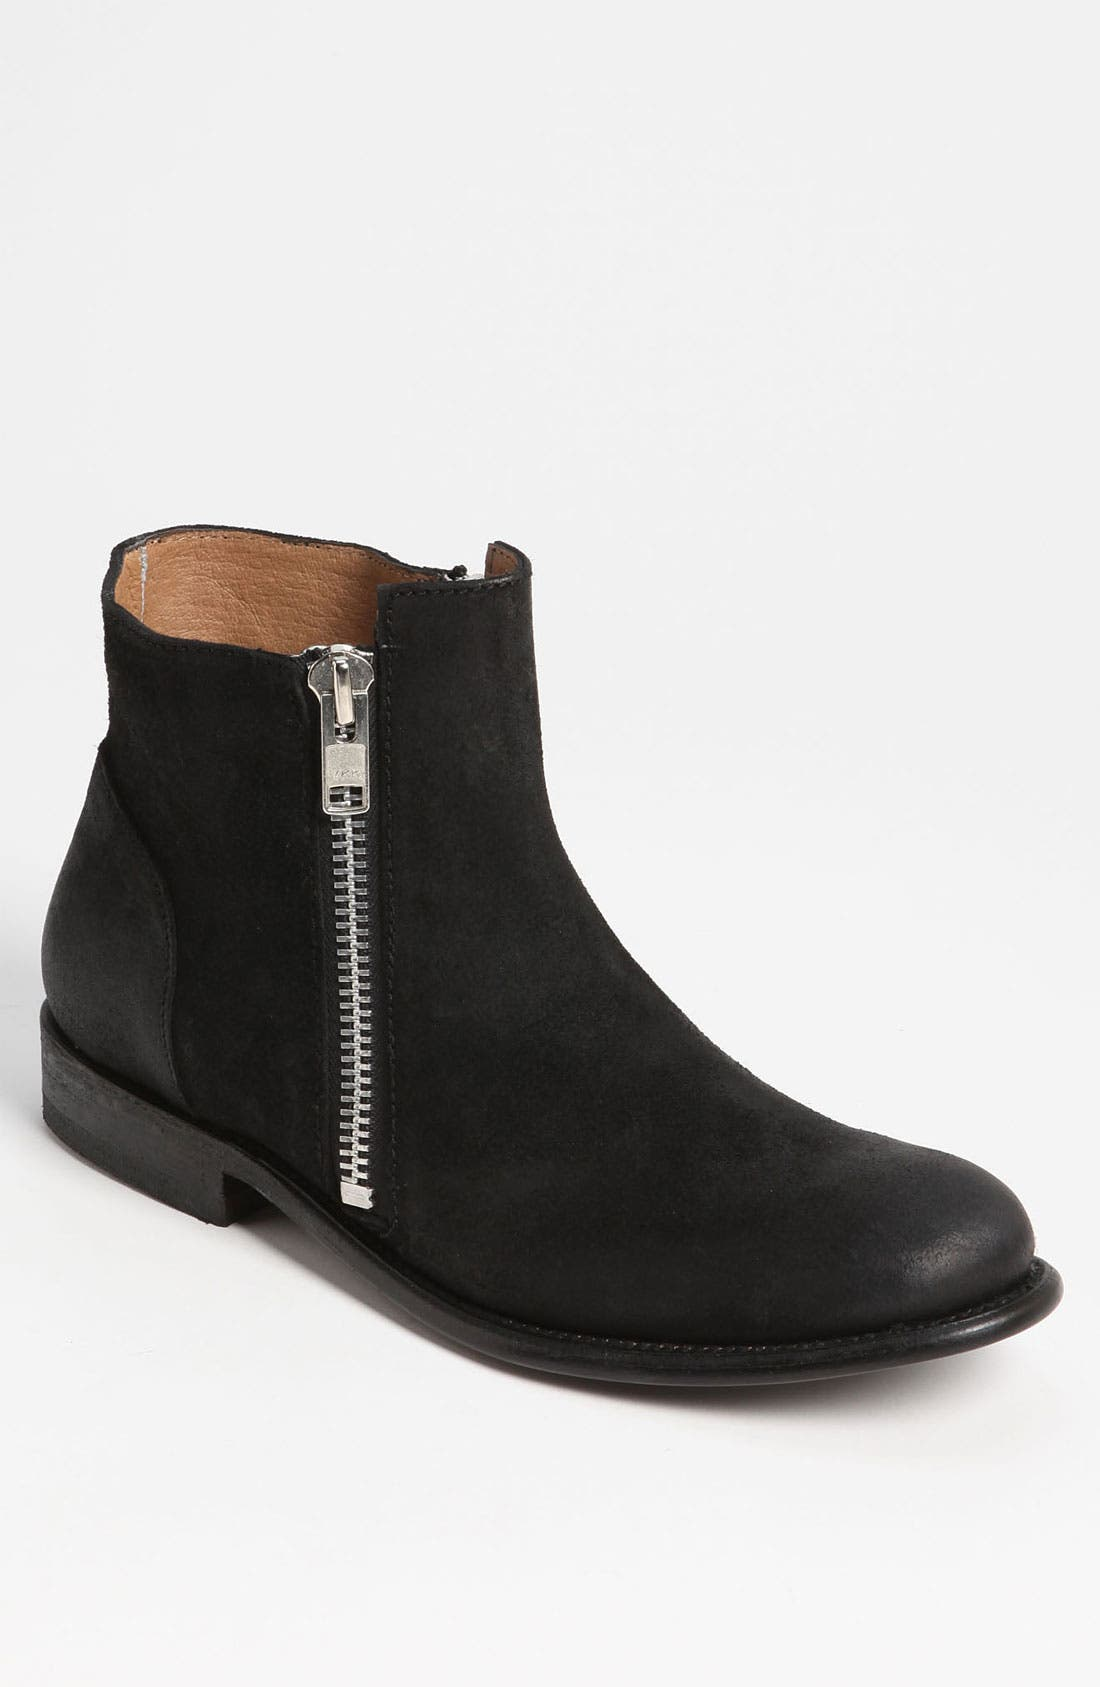 Main Image - J.D. Fisk 'Dallas' Zip Boot